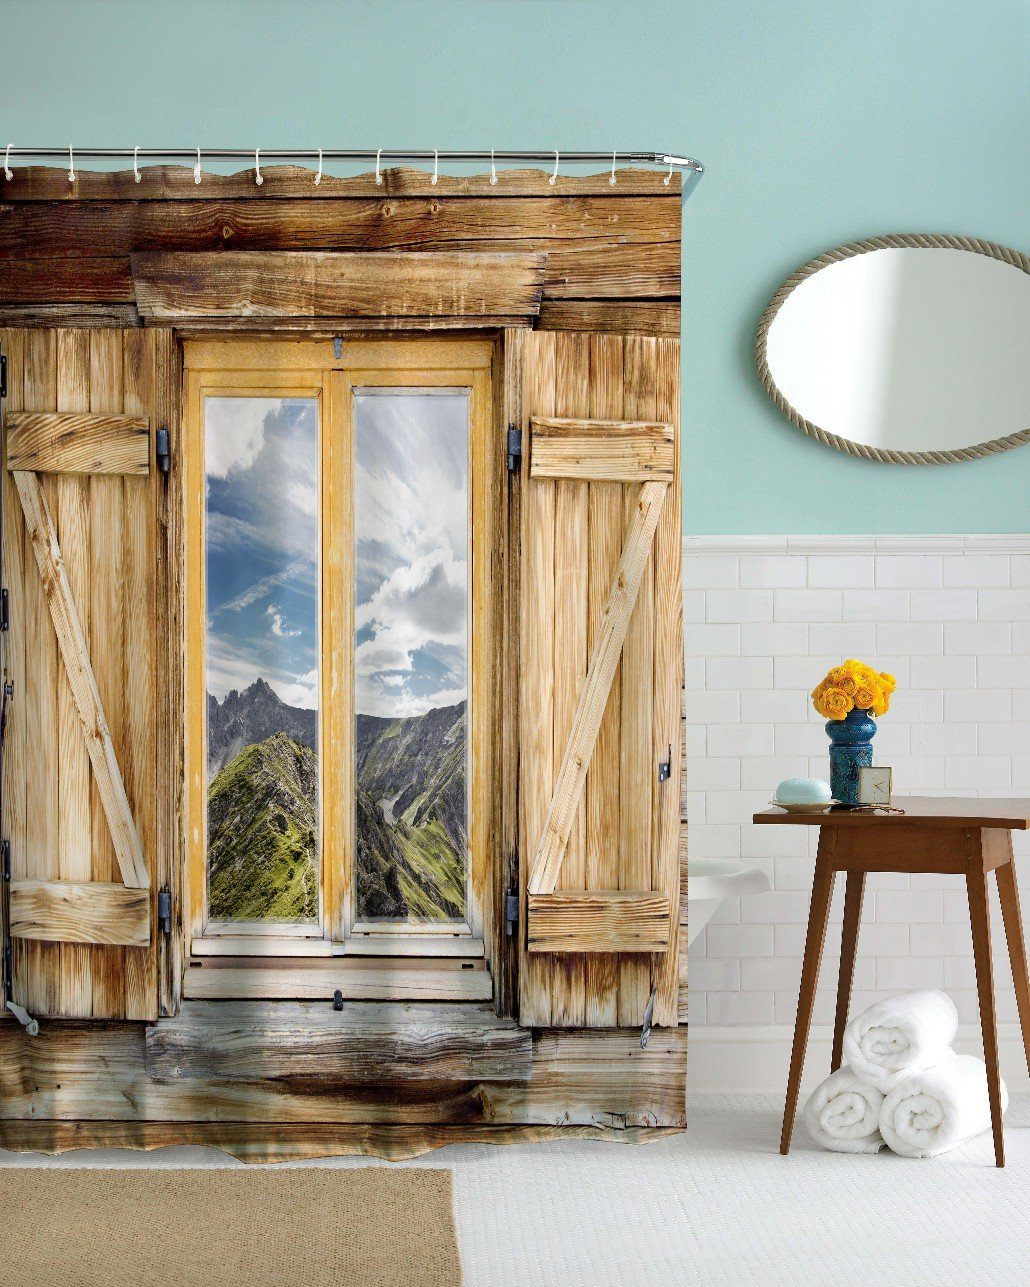 Goodbath Farmhouse Shower Curtain, Old Wooden Barn Door Window Pattern with Mountain Hill Sky Nature View, Waterproof Fabric 3D Bath Shower Curtains, 72 x 72 Inch, Old Wood by Goodbath (Image #2)